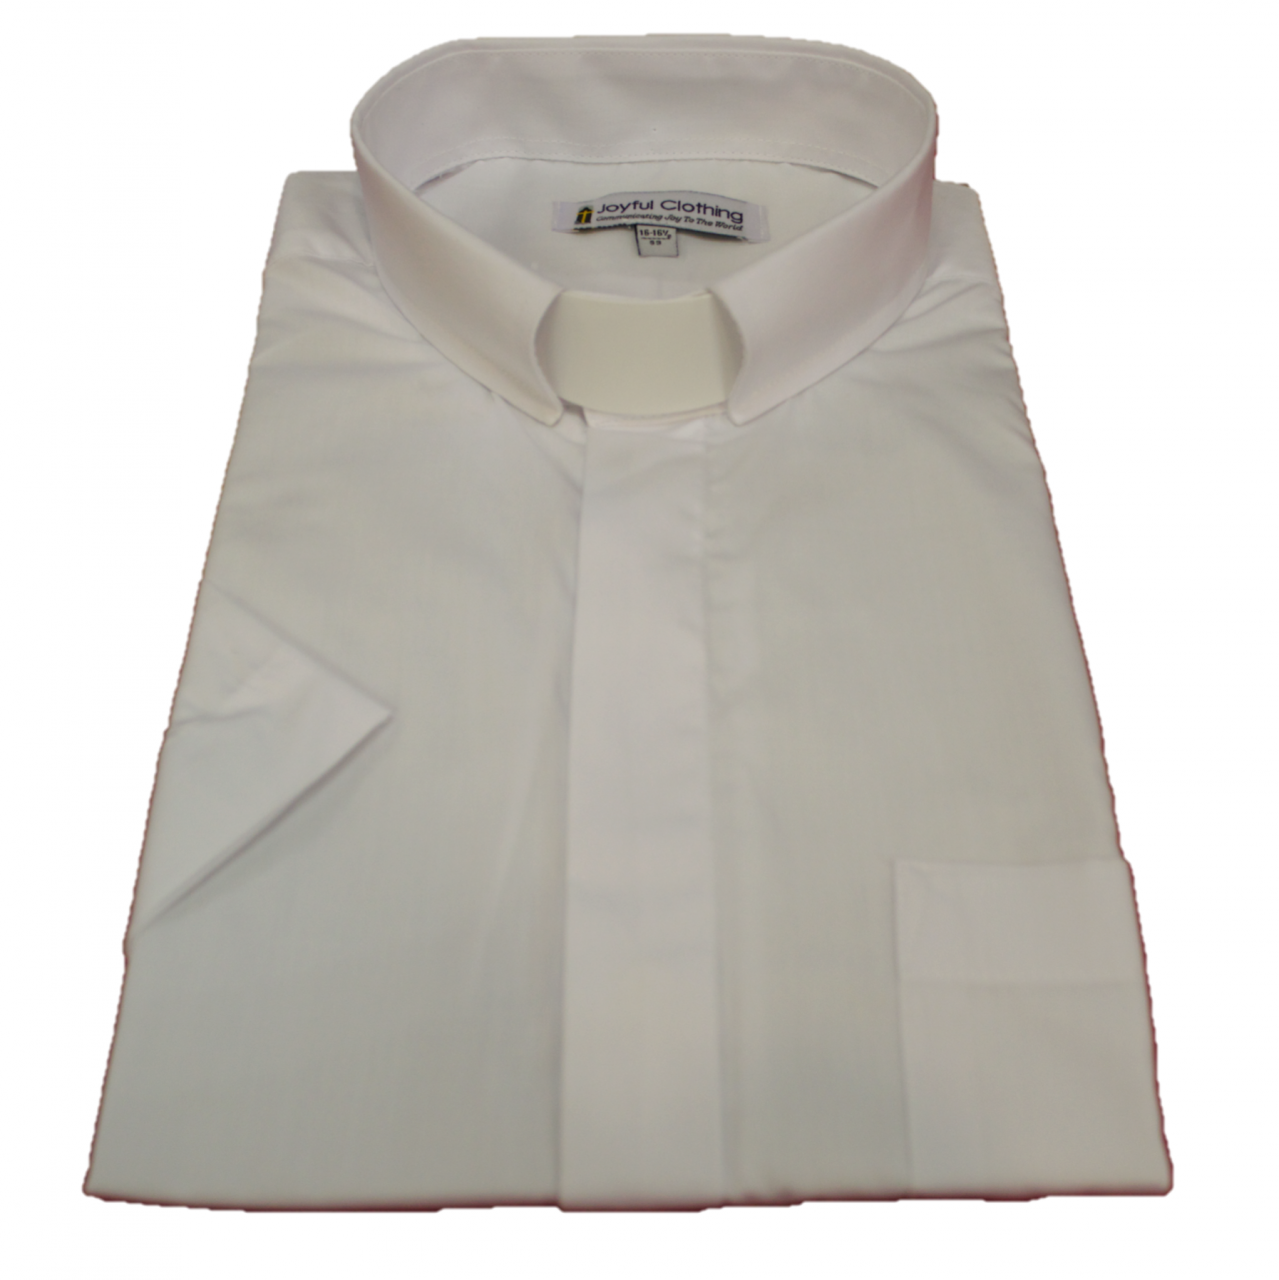 153. Men's Short-Sleeve Tab-Collar Clergy Shirt - White